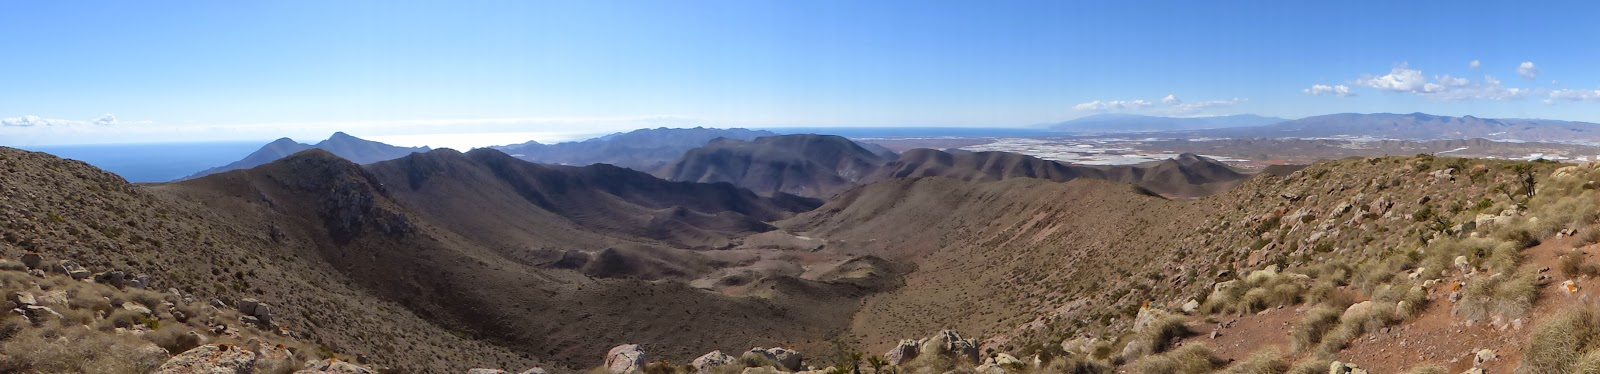 Looking down into the Caldera de Majada Redonda from Cerro Penones (488m)